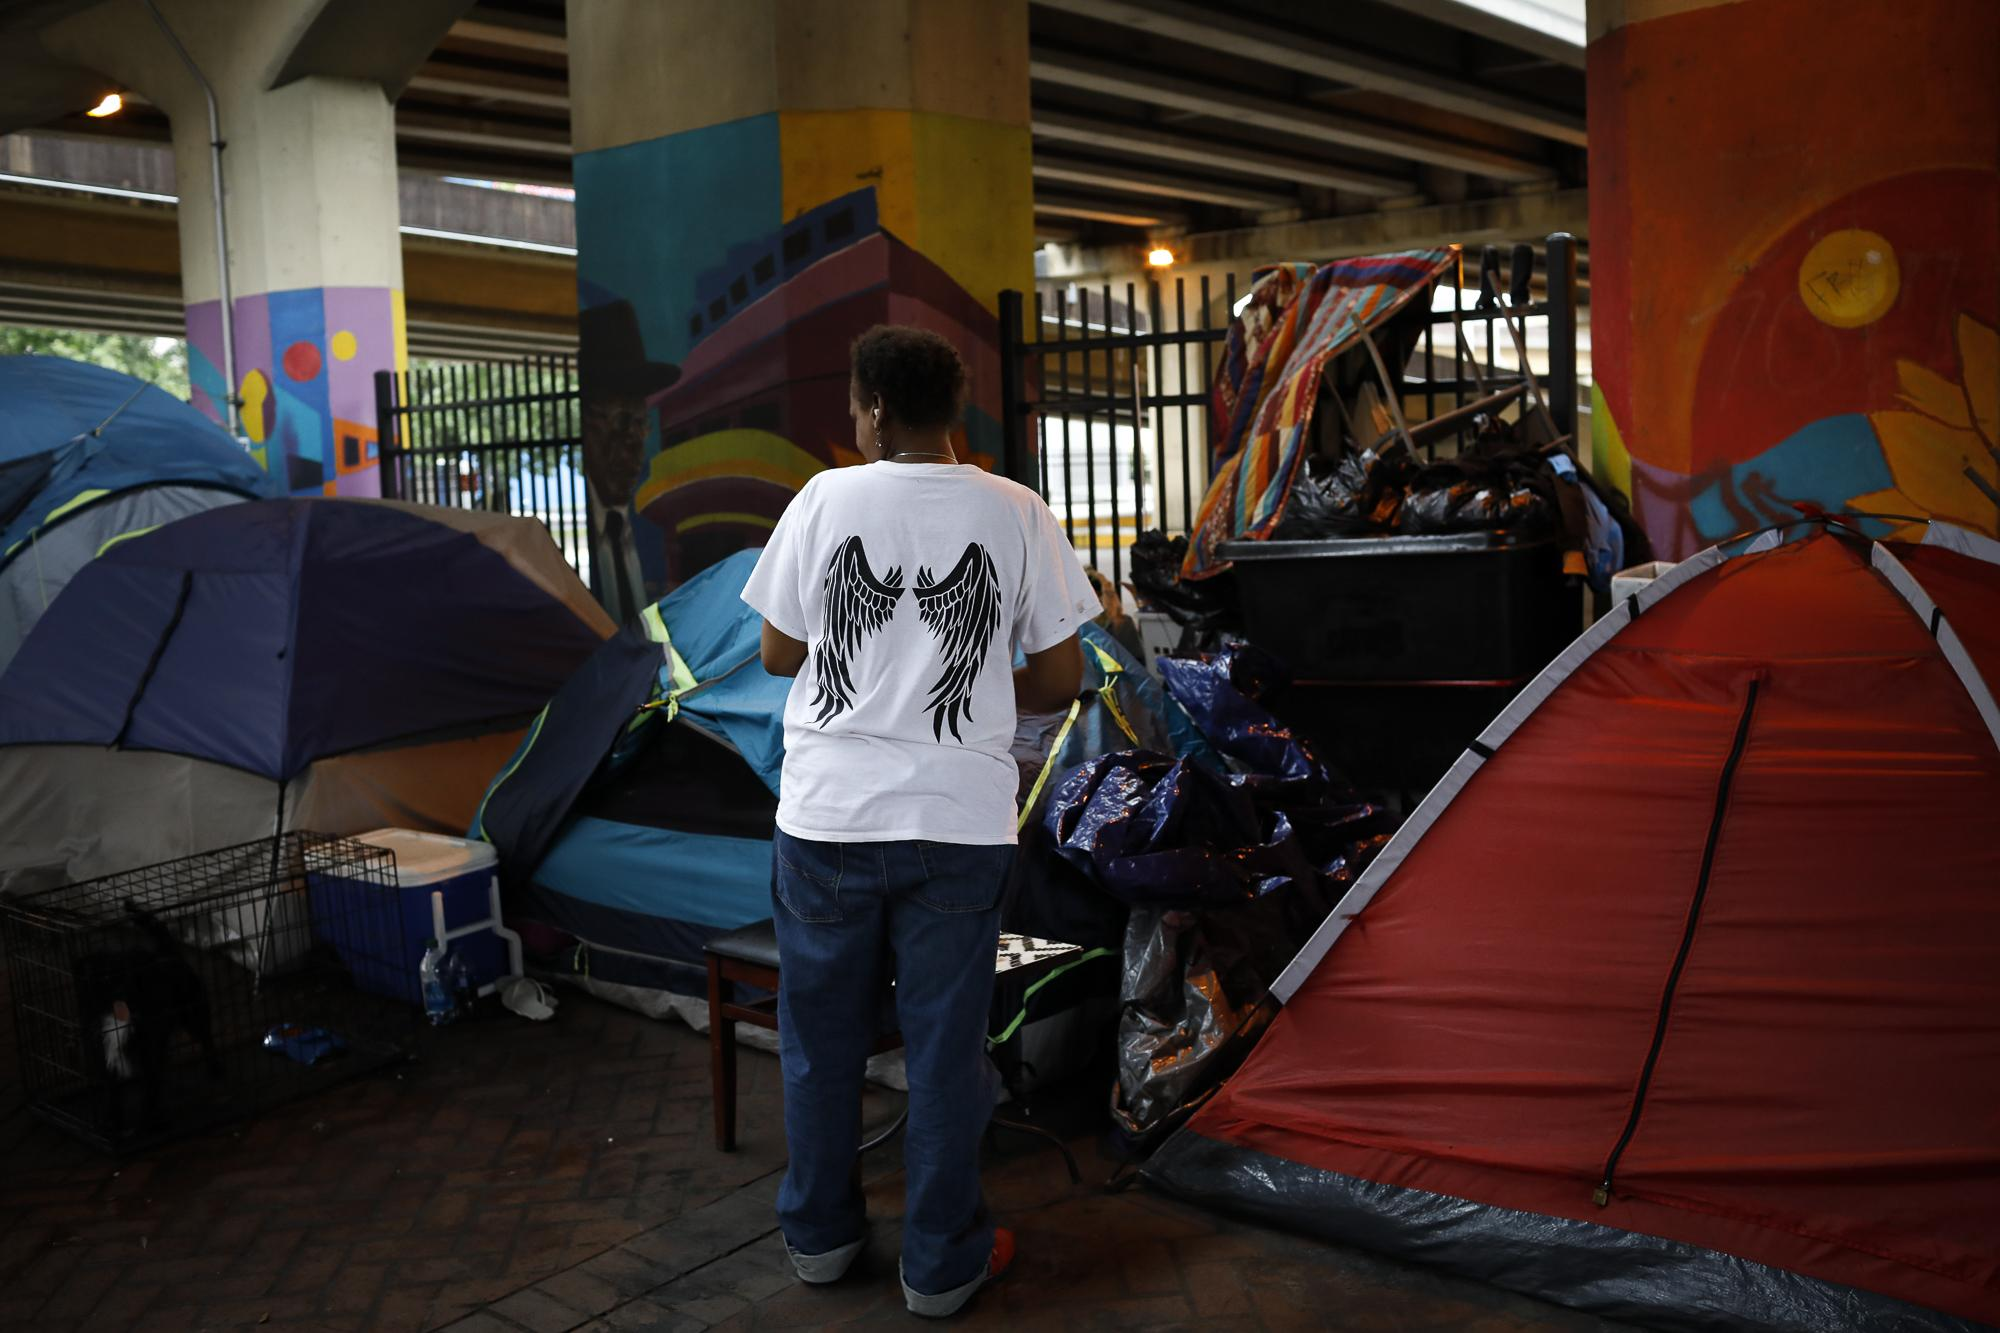 A homeless woman stands outside her tent under an expressway ahead of Hurricane Ida, in New Orleans, Louisiana, U.S. August 29, 2021. REUTERS/Marco Bello